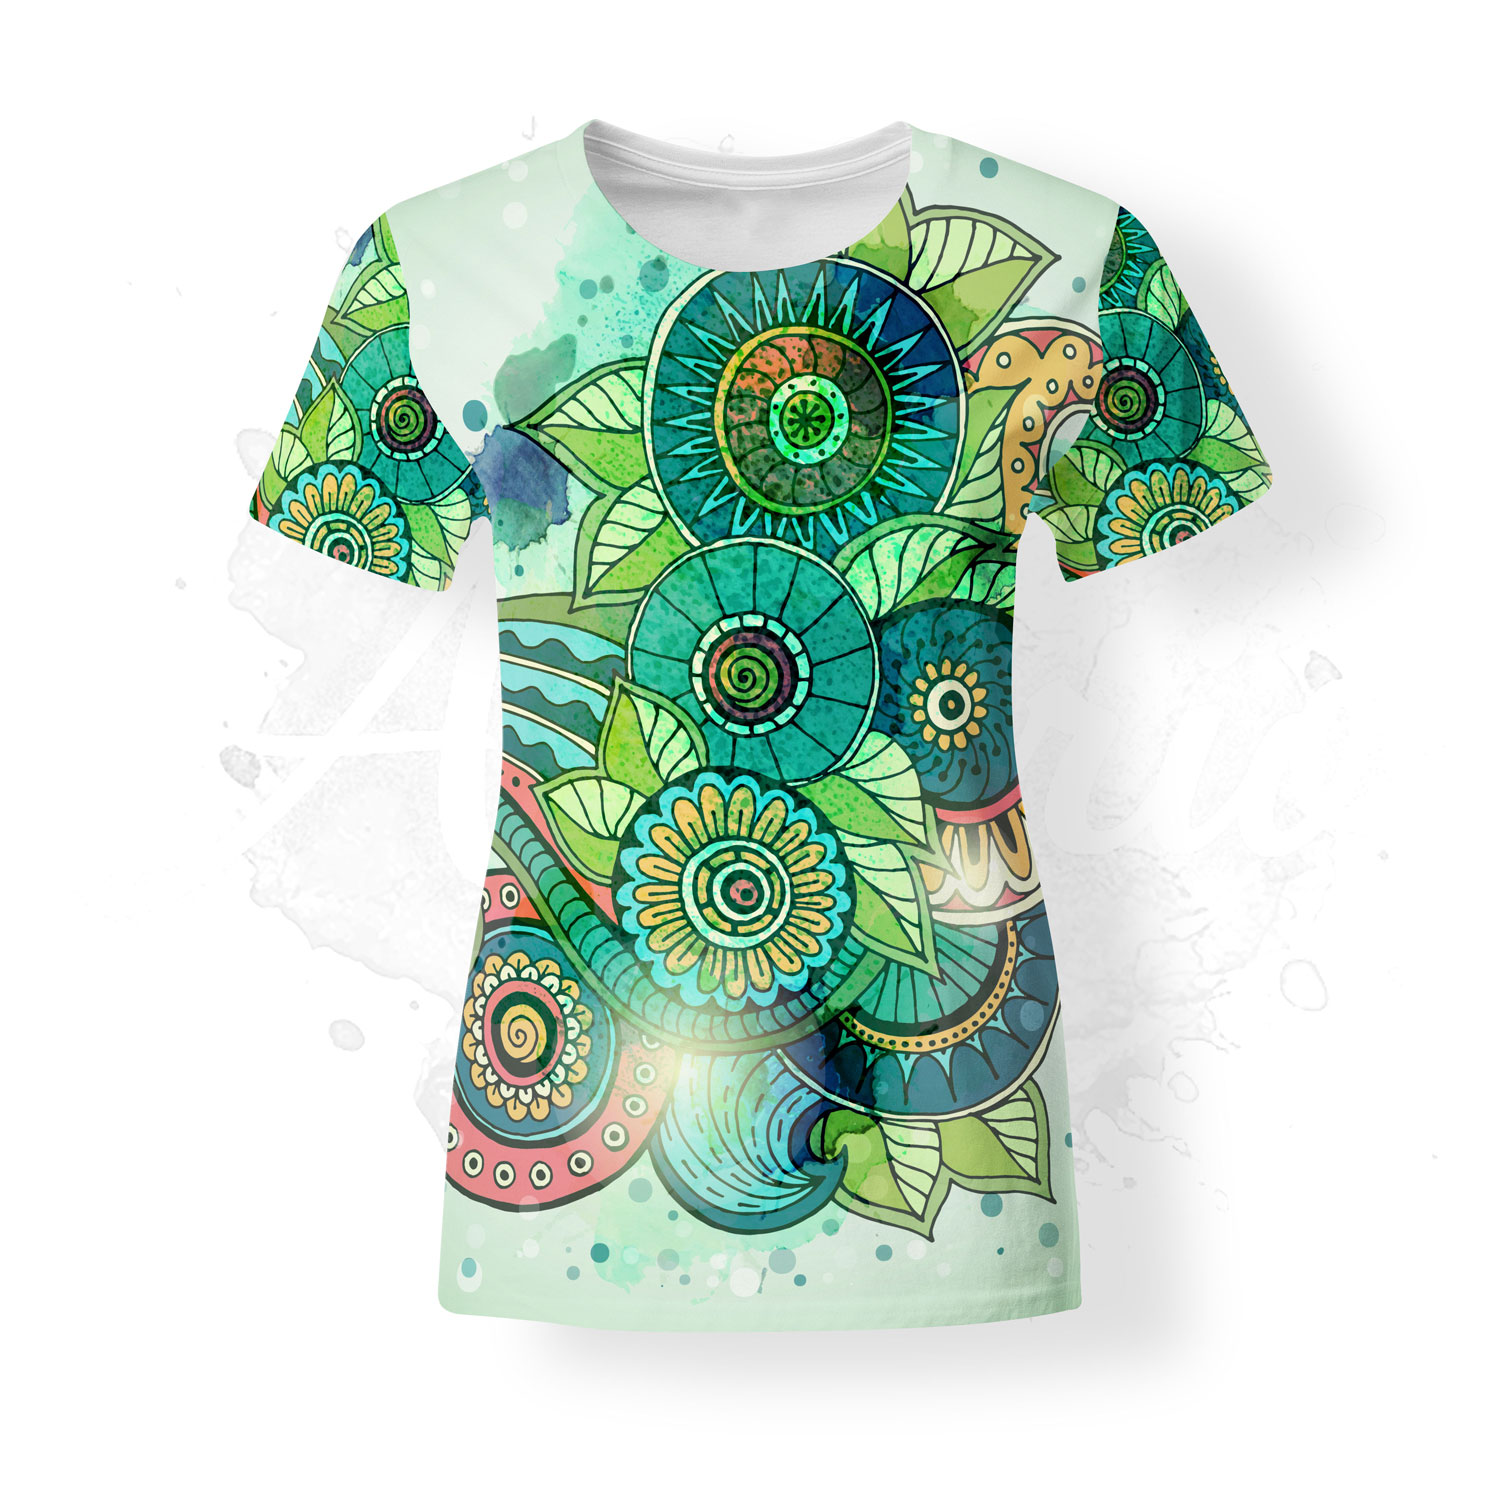 T-Shirt for women, Julia Snegireva, Forest, green, chill